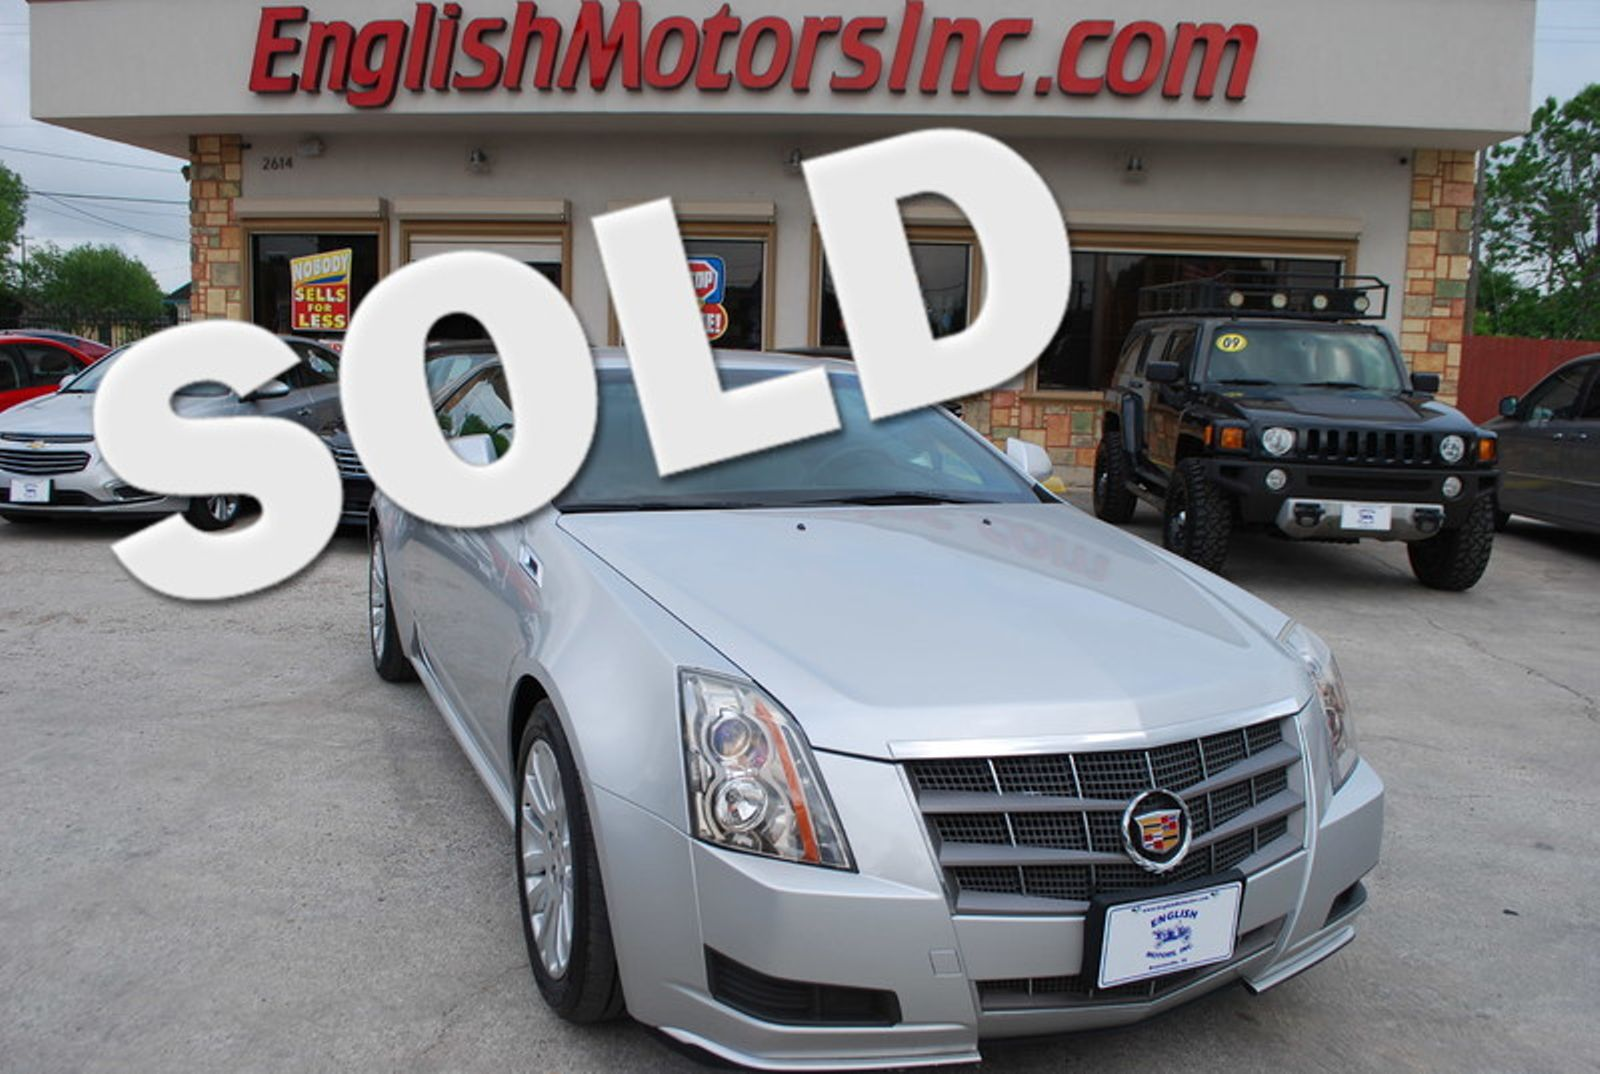 2011 cadillac cts window sticker kamos sticker for English motors in brownsville